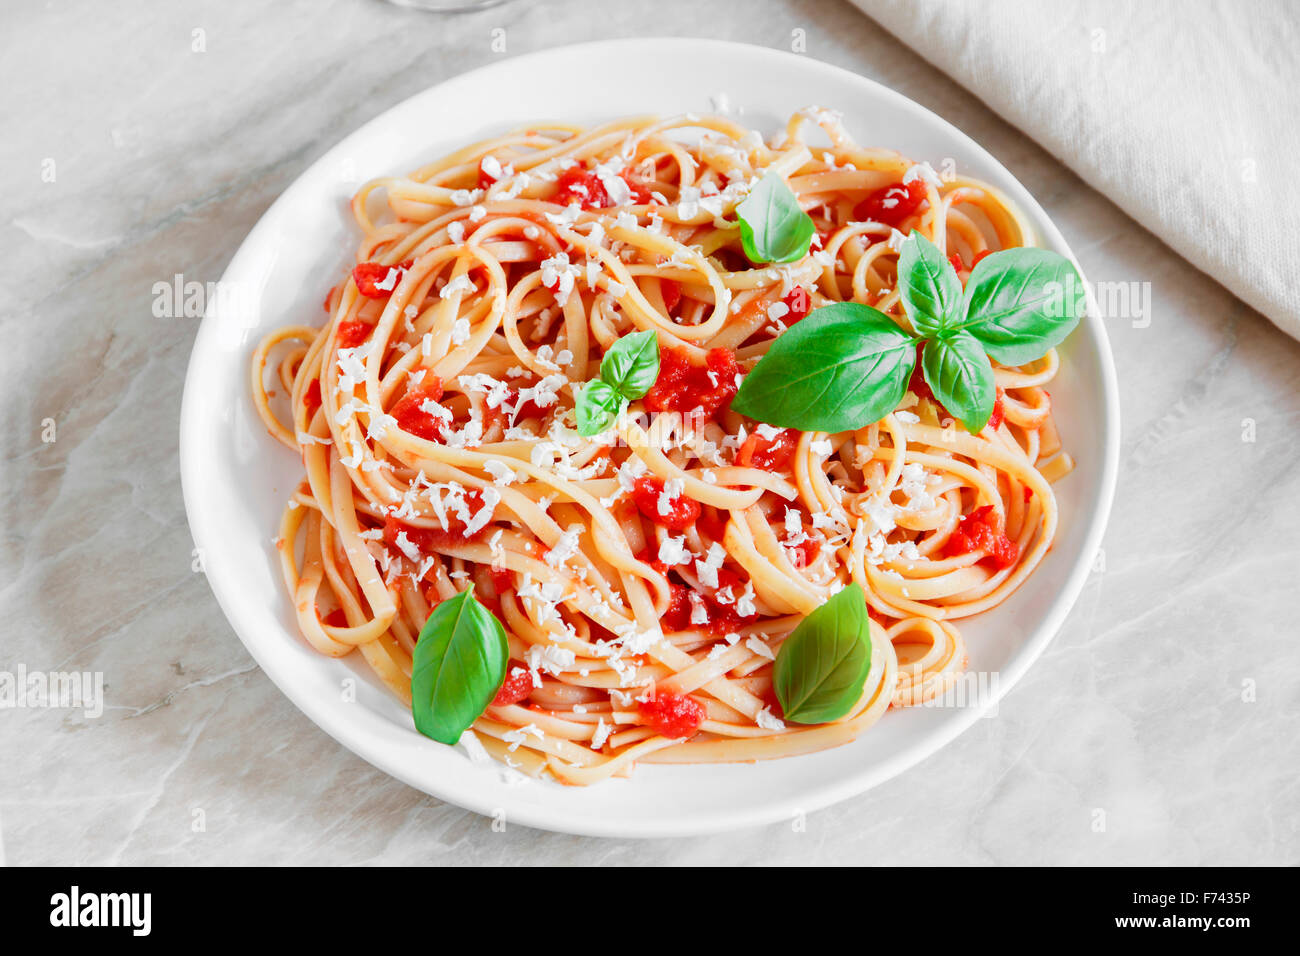 Linguine pasta in tomato sauce and cheese on a plate - Stock Image